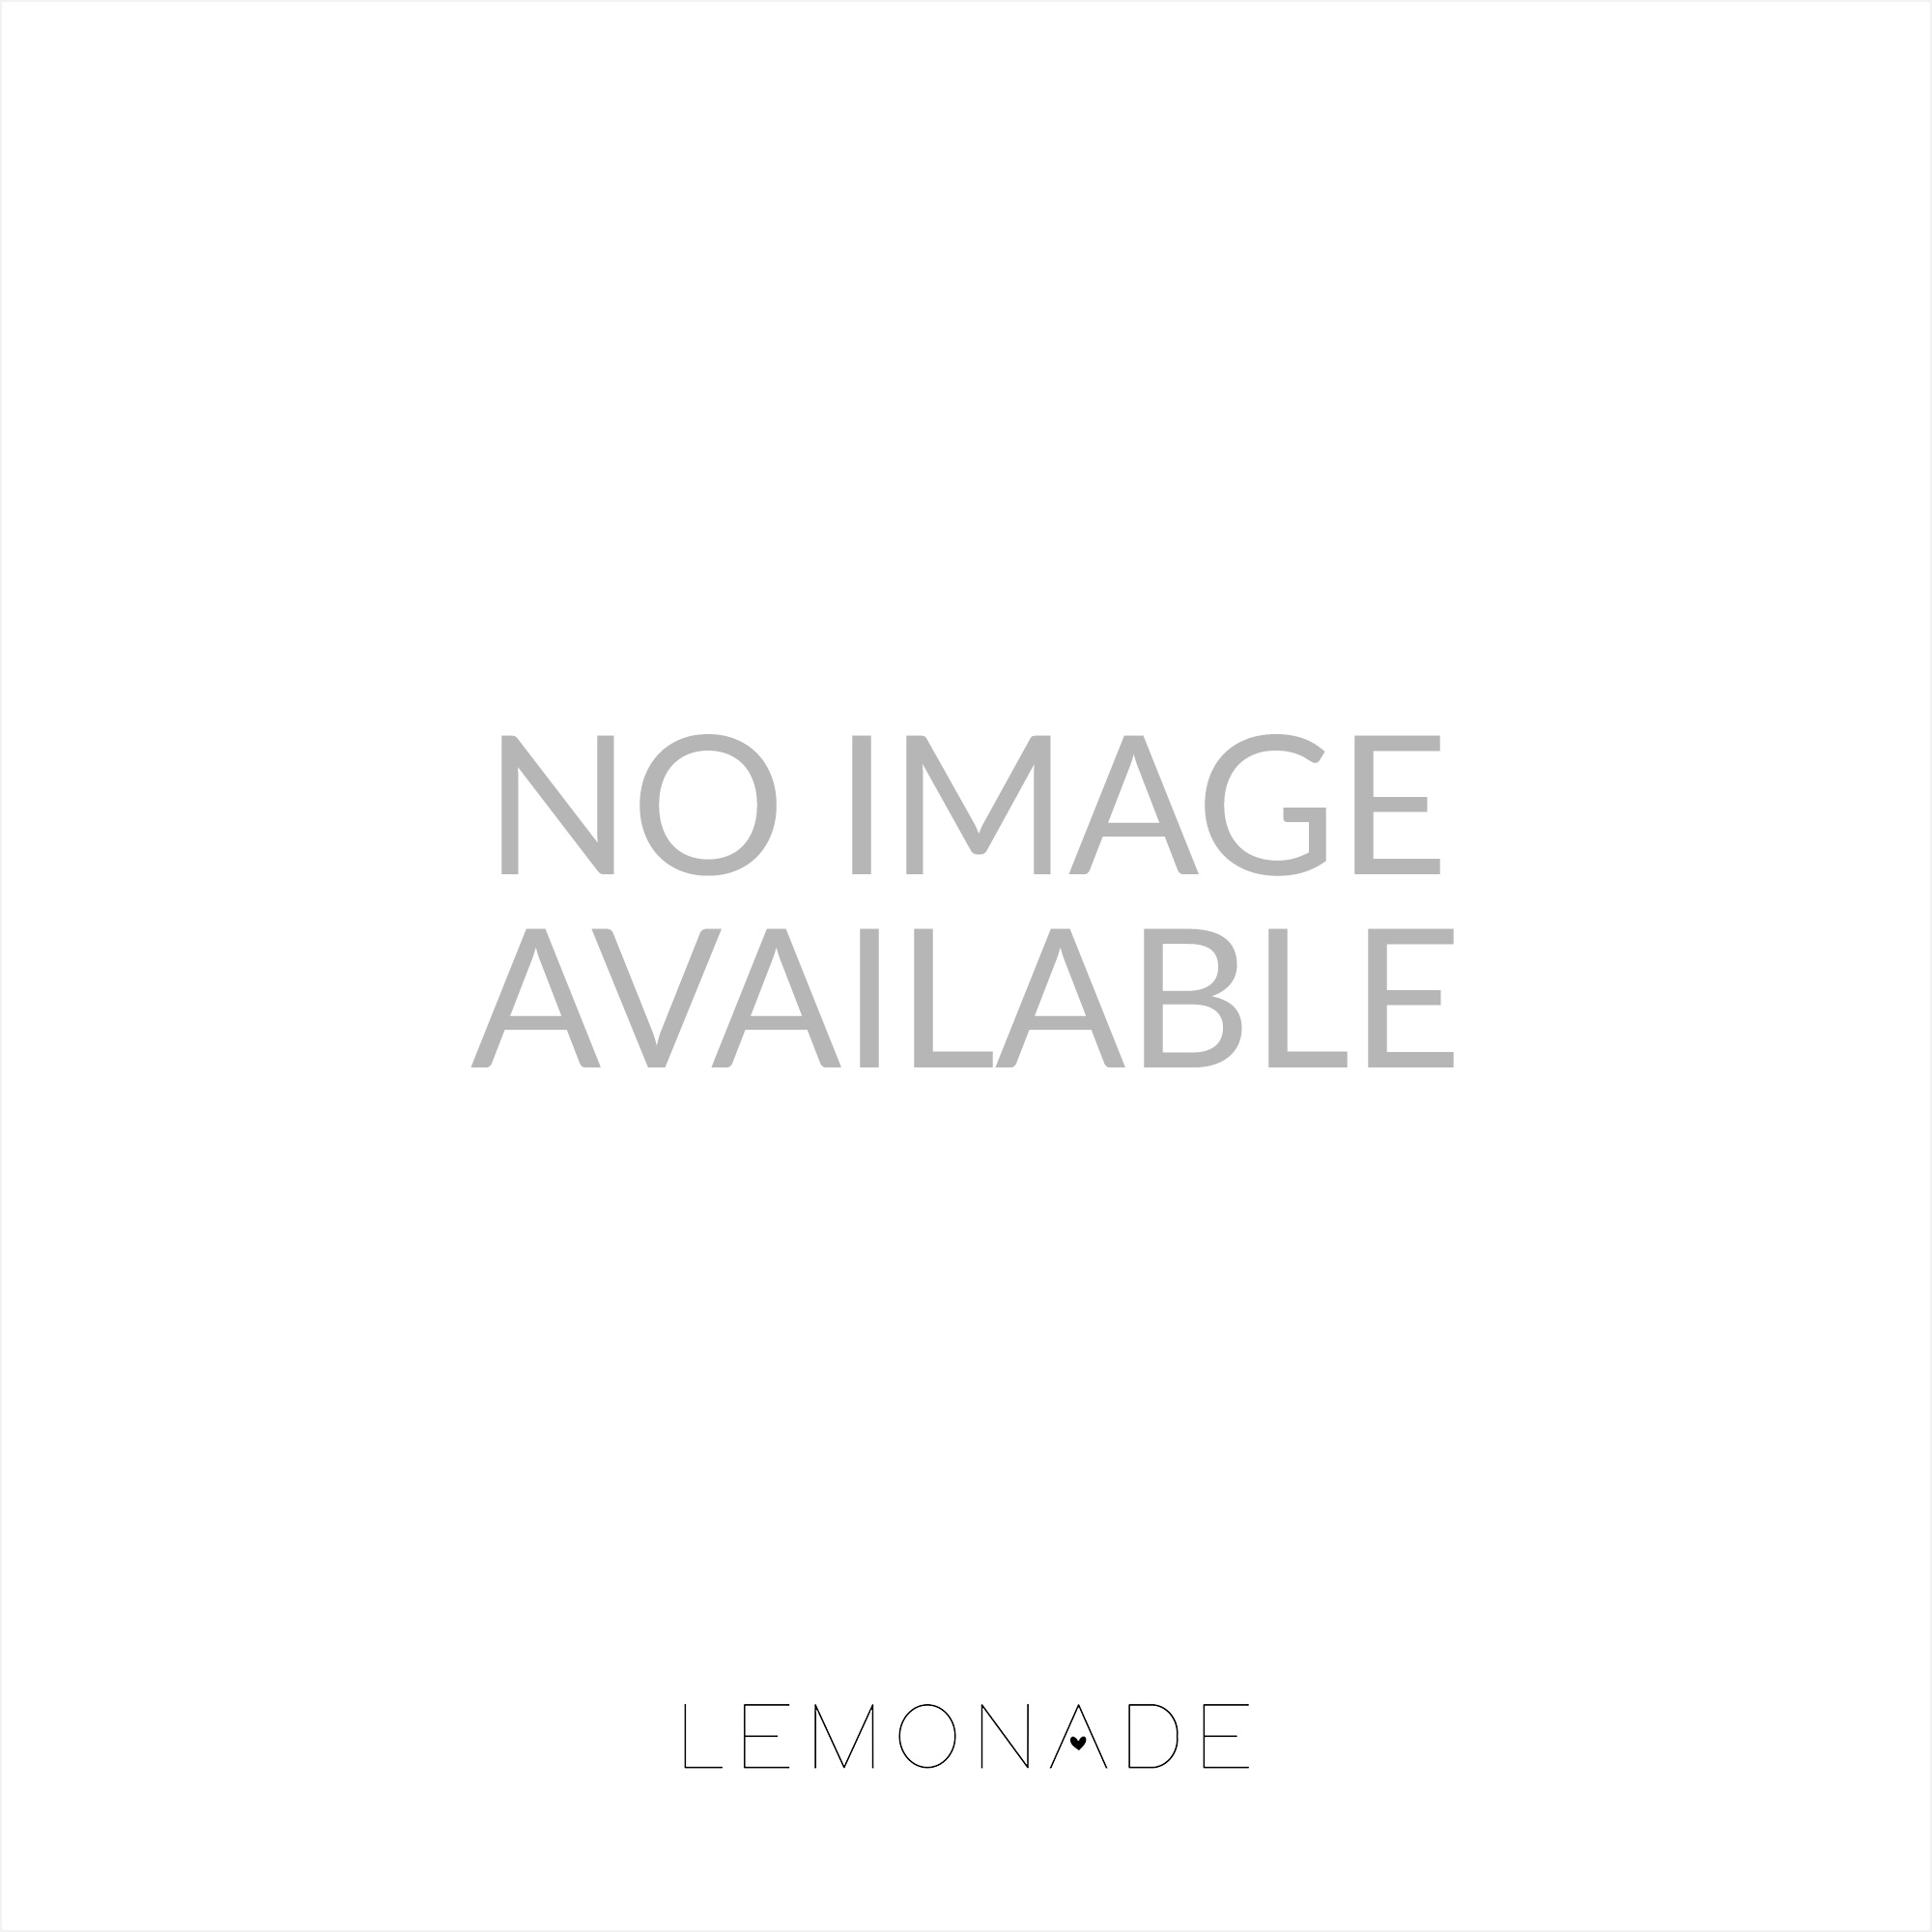 Lemonade Crystal Tealights